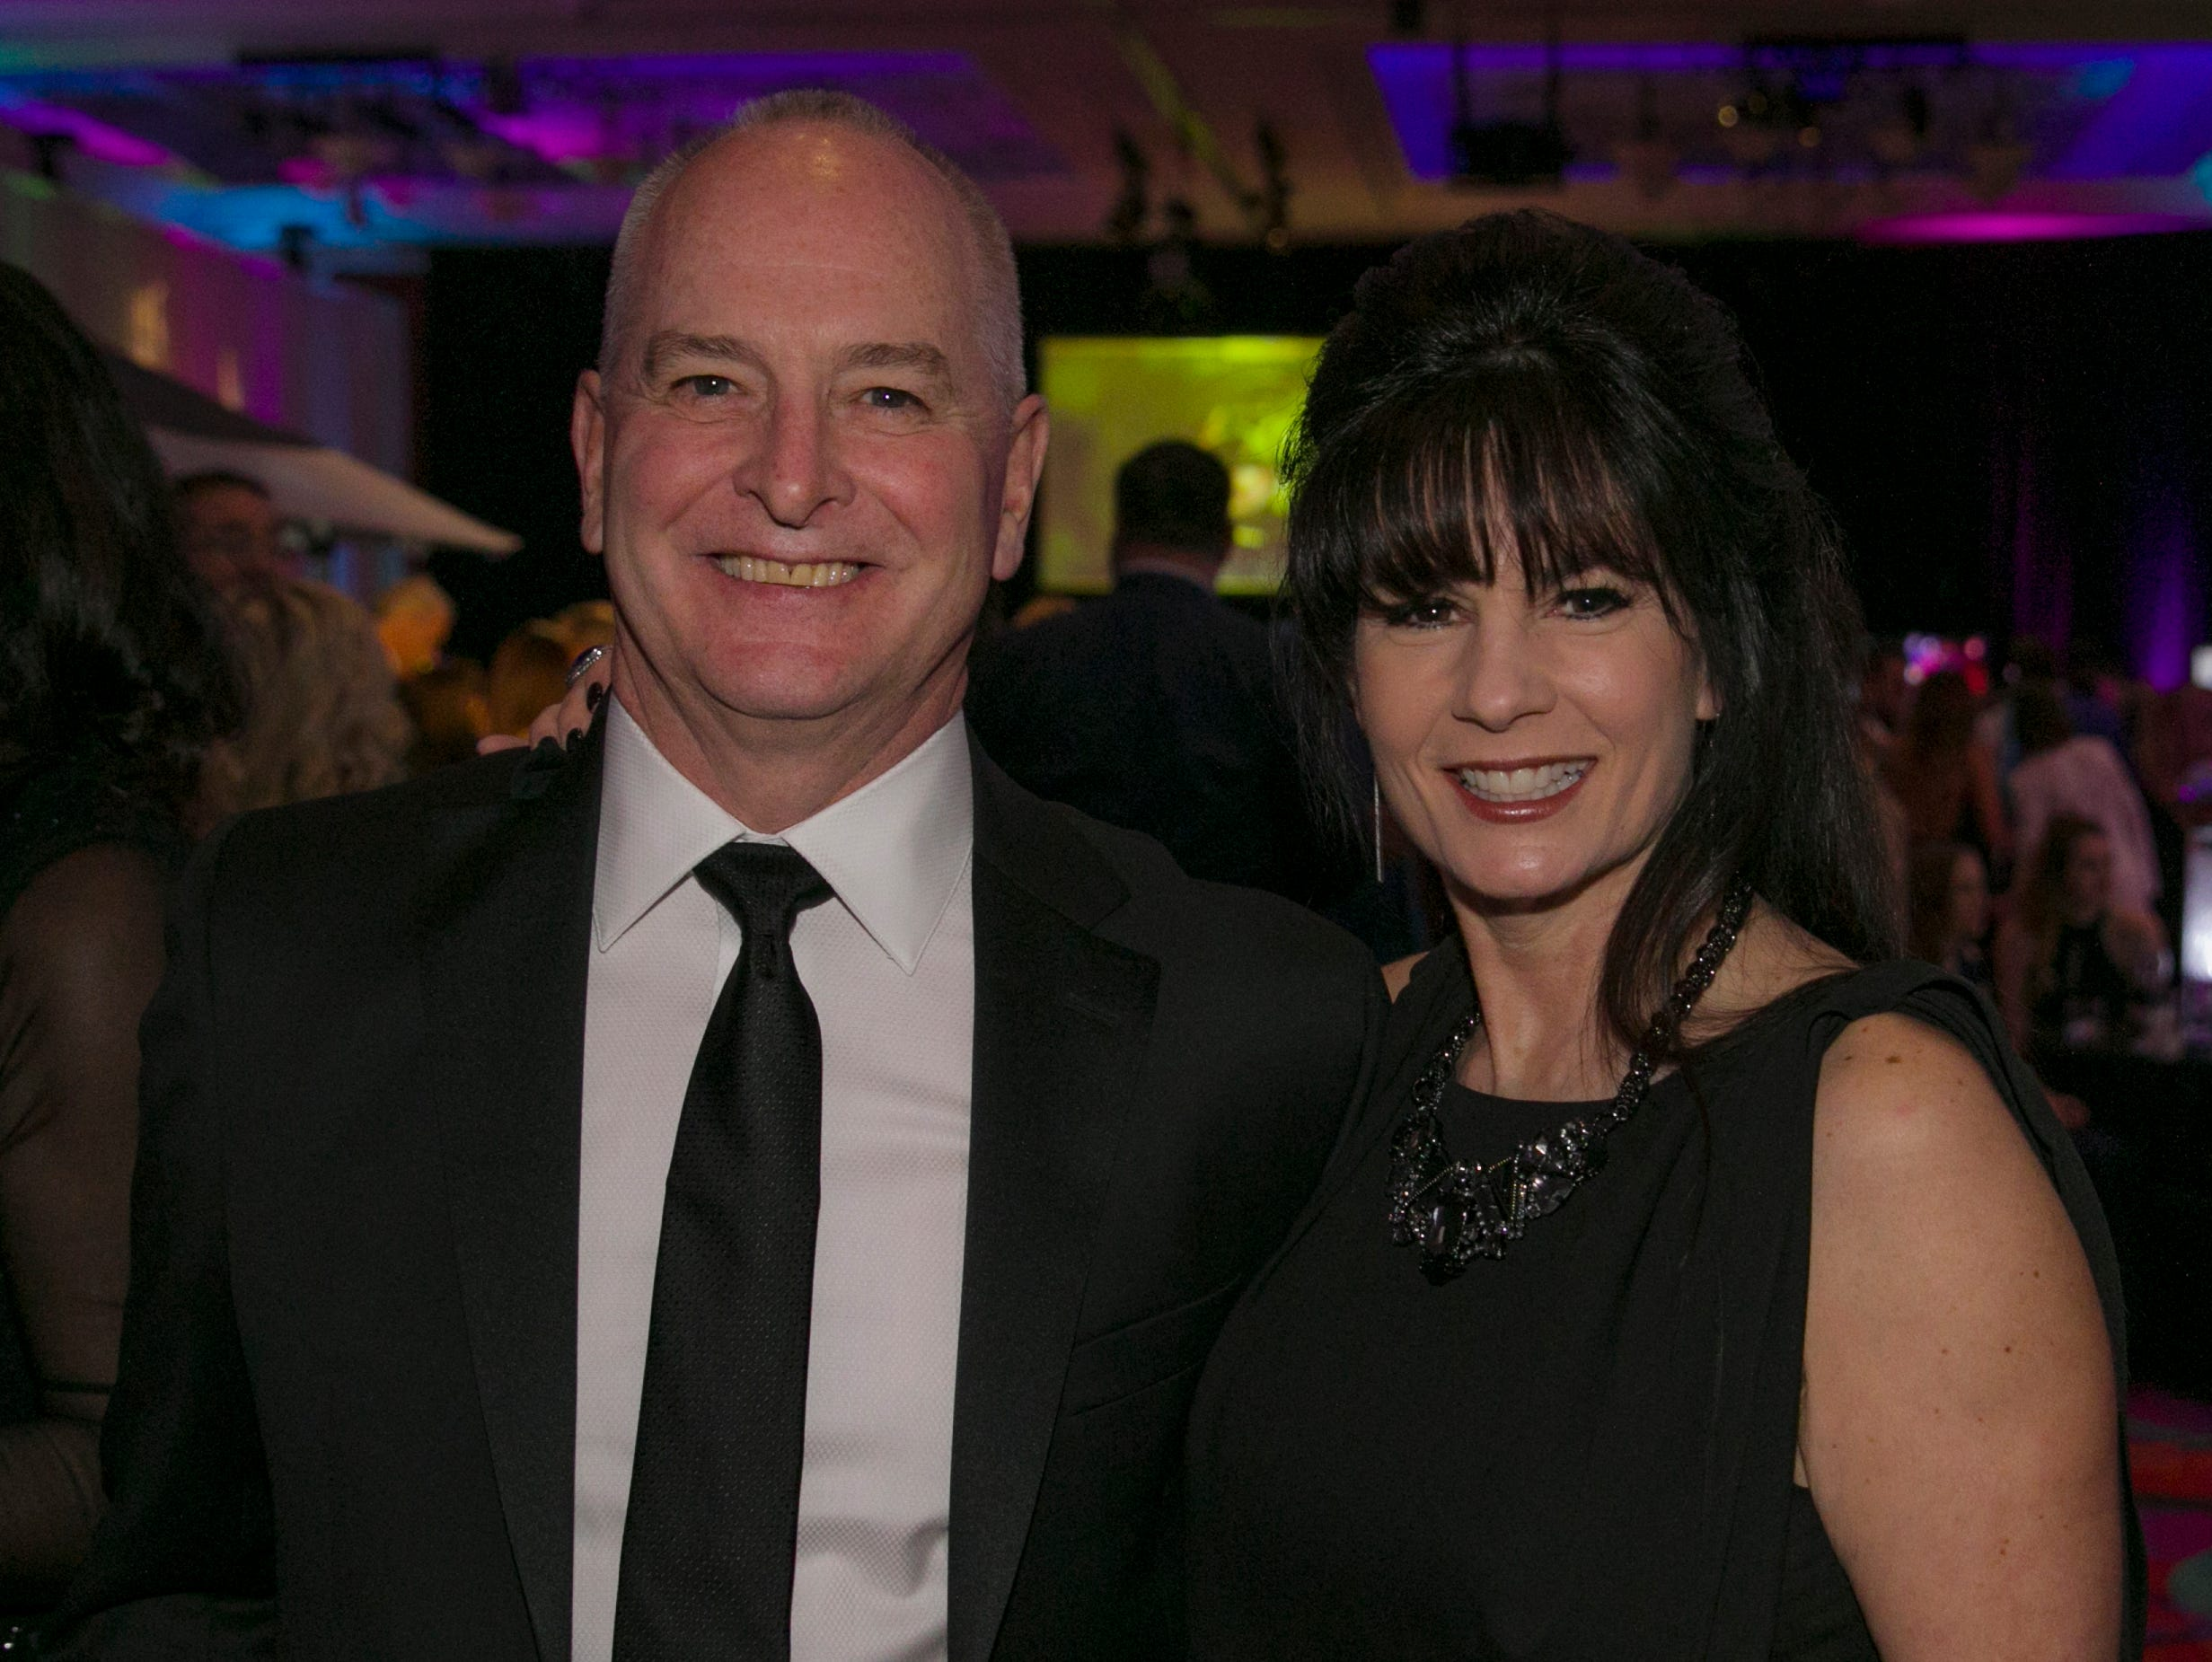 Bill and Liza Bradley during the 10th Annual Blue Tie Ball at the Peppermill Resort Spa Casino in Reno, NV on Friday night, Feb. 1, 2019.